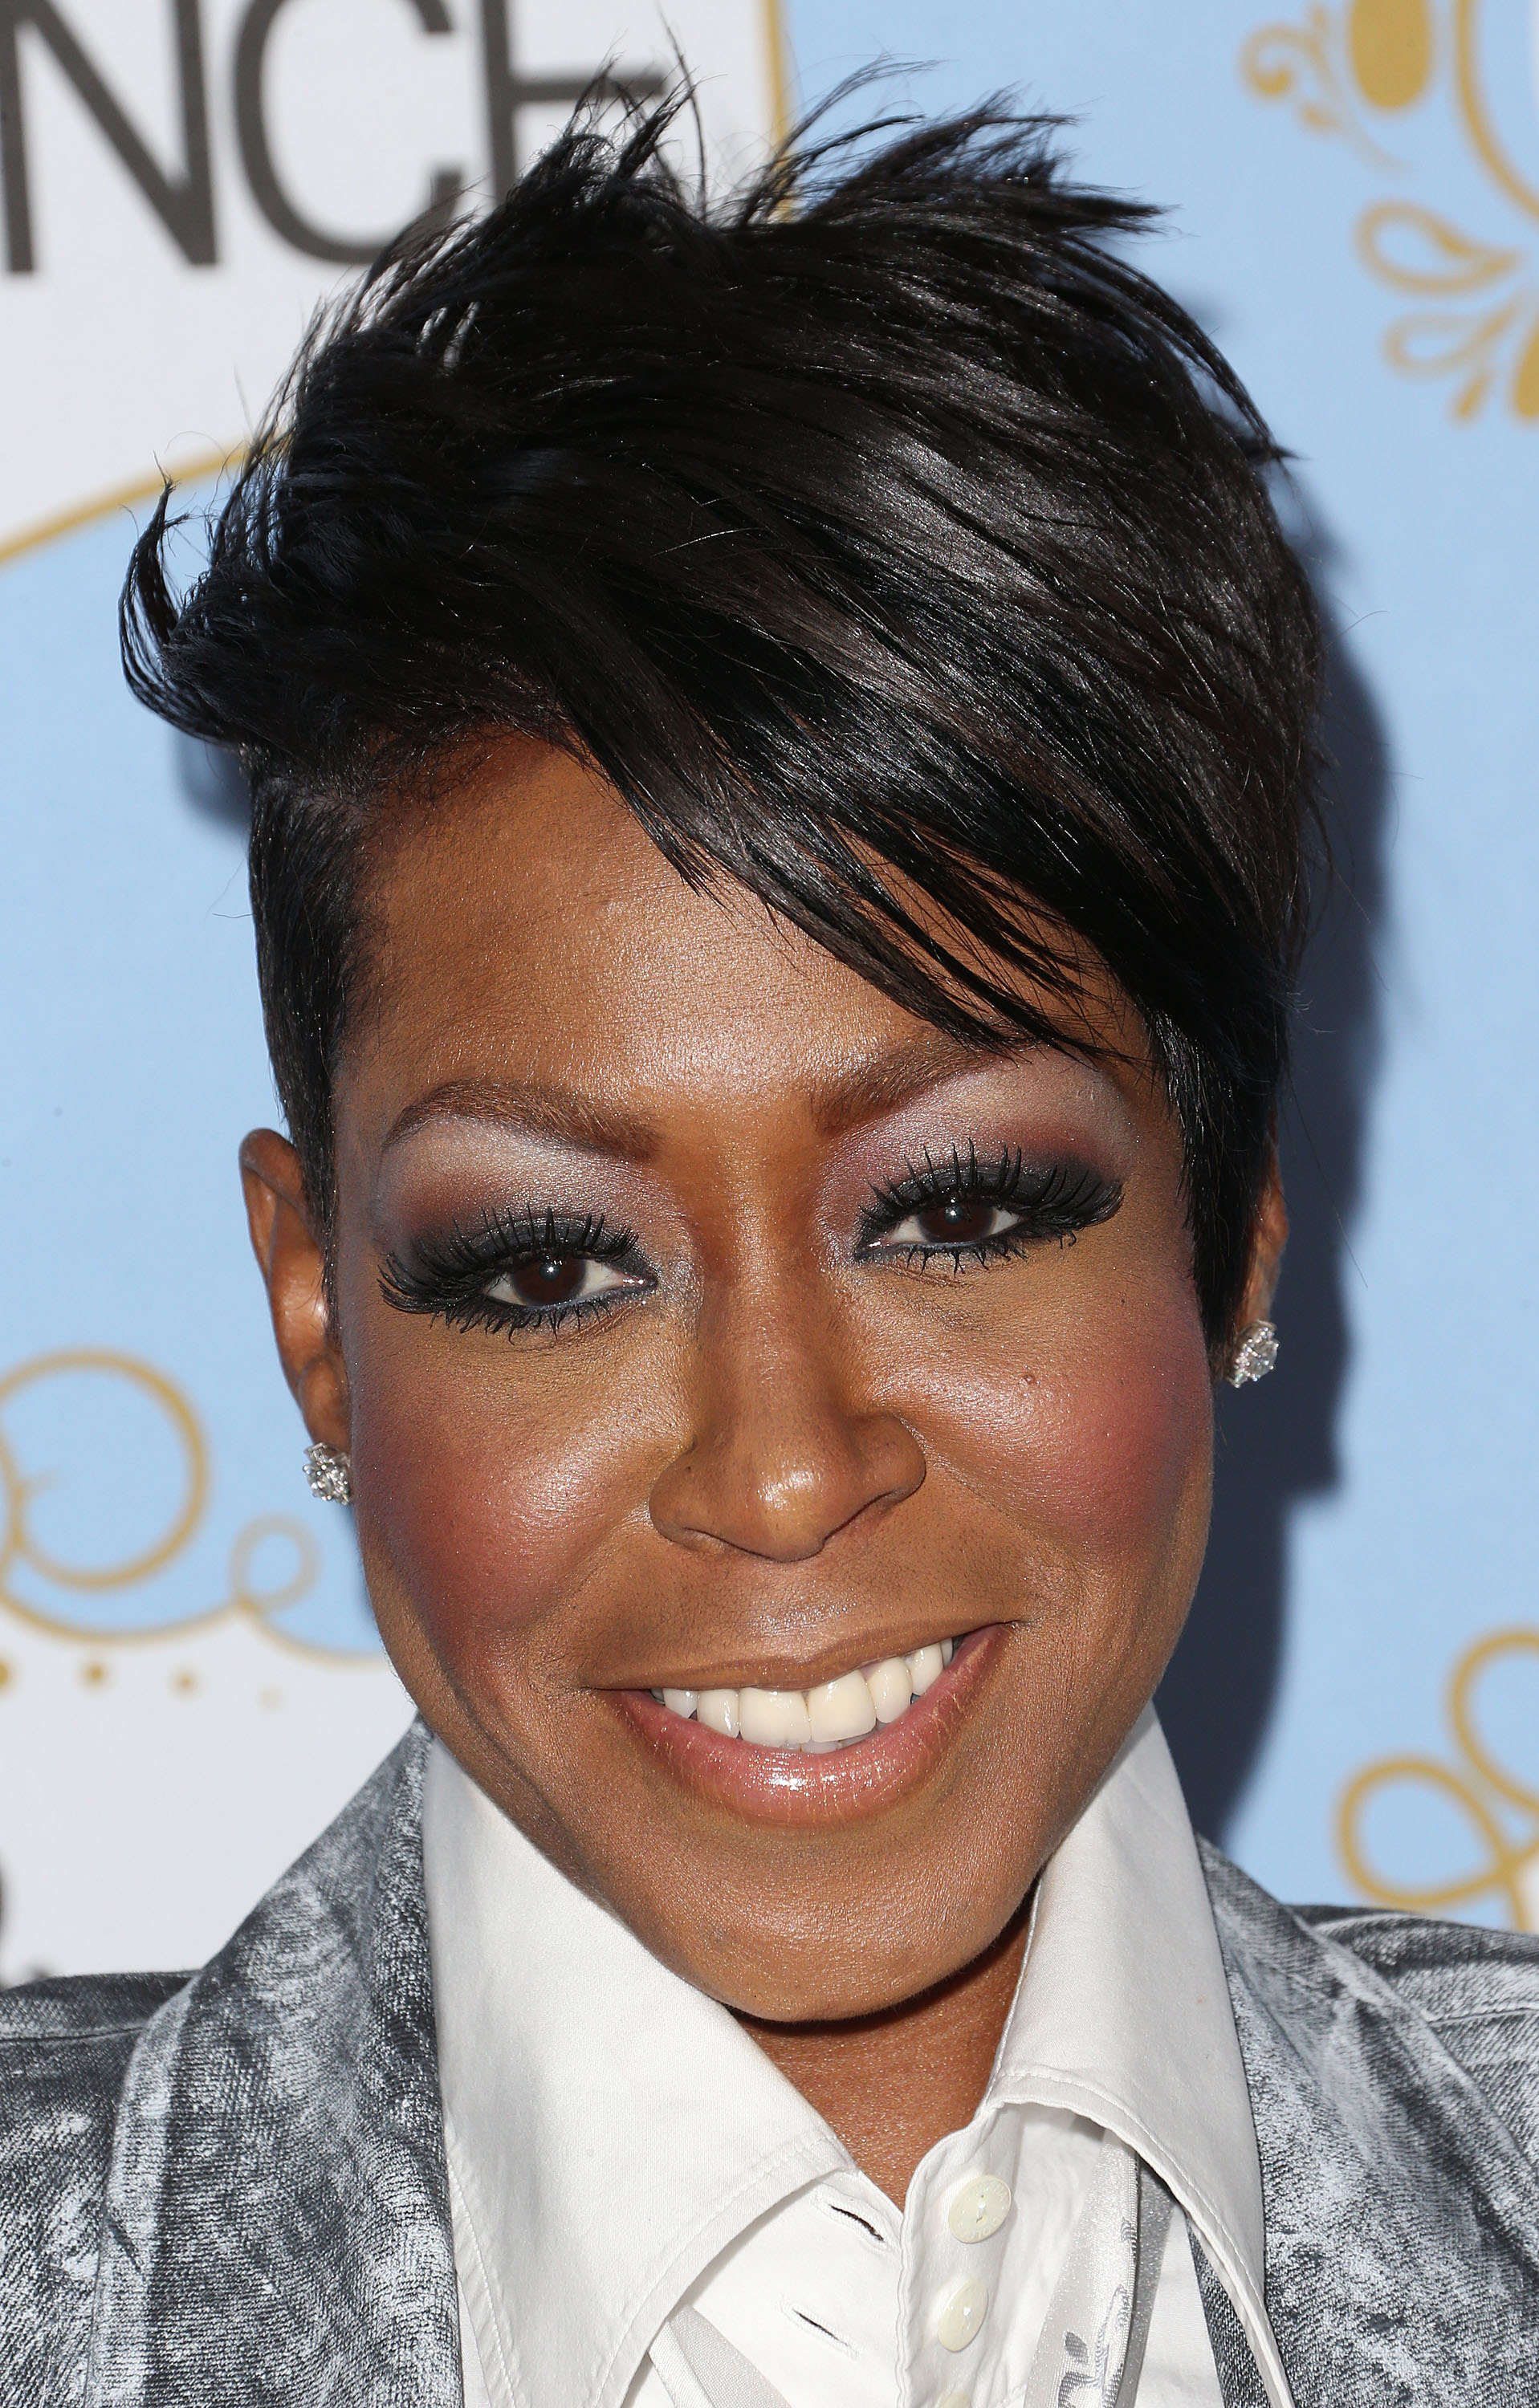 BEVERLY HILLS, CA - FEBRUARY 21: Actress Tichina Arnold attends the Sixth Annual ESSENCE Black Women In Hollywood Awards Luncheon at the Beverly Hills Hotel on February 21, 2013 in Beverly Hills, California. (Photo by Frederick M. Brown/Getty Images)